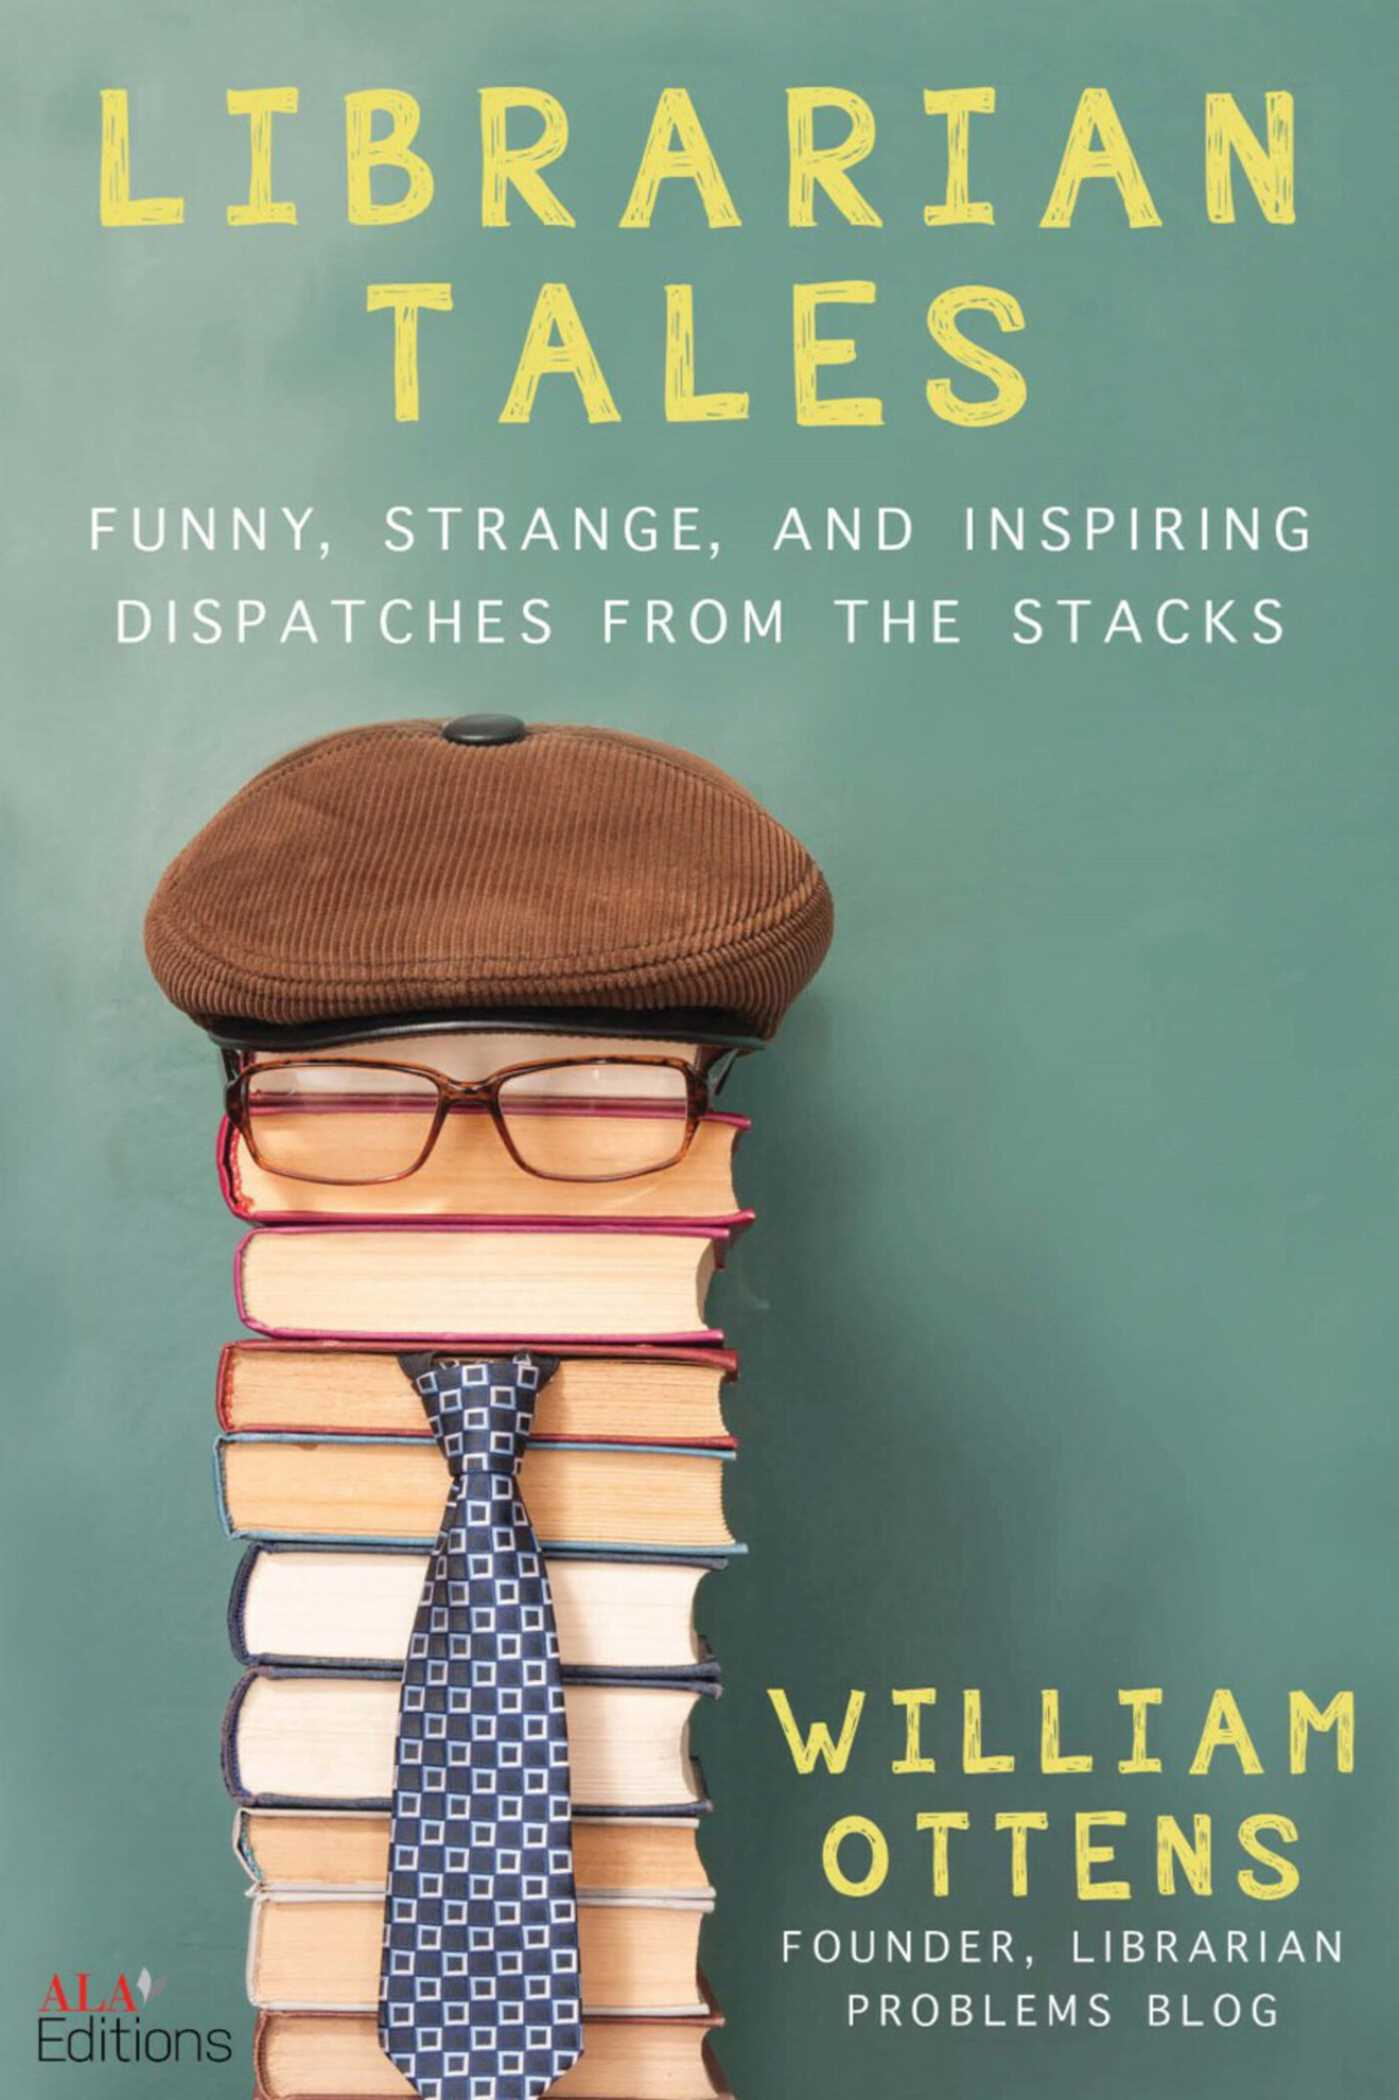 Librarian Tales: Dispatches from the Stacks, Green, Stack of Books, Hat, Glasses, Tie, William Ottens, Library, Books, Reading, Funny, Humour, Non-fiction